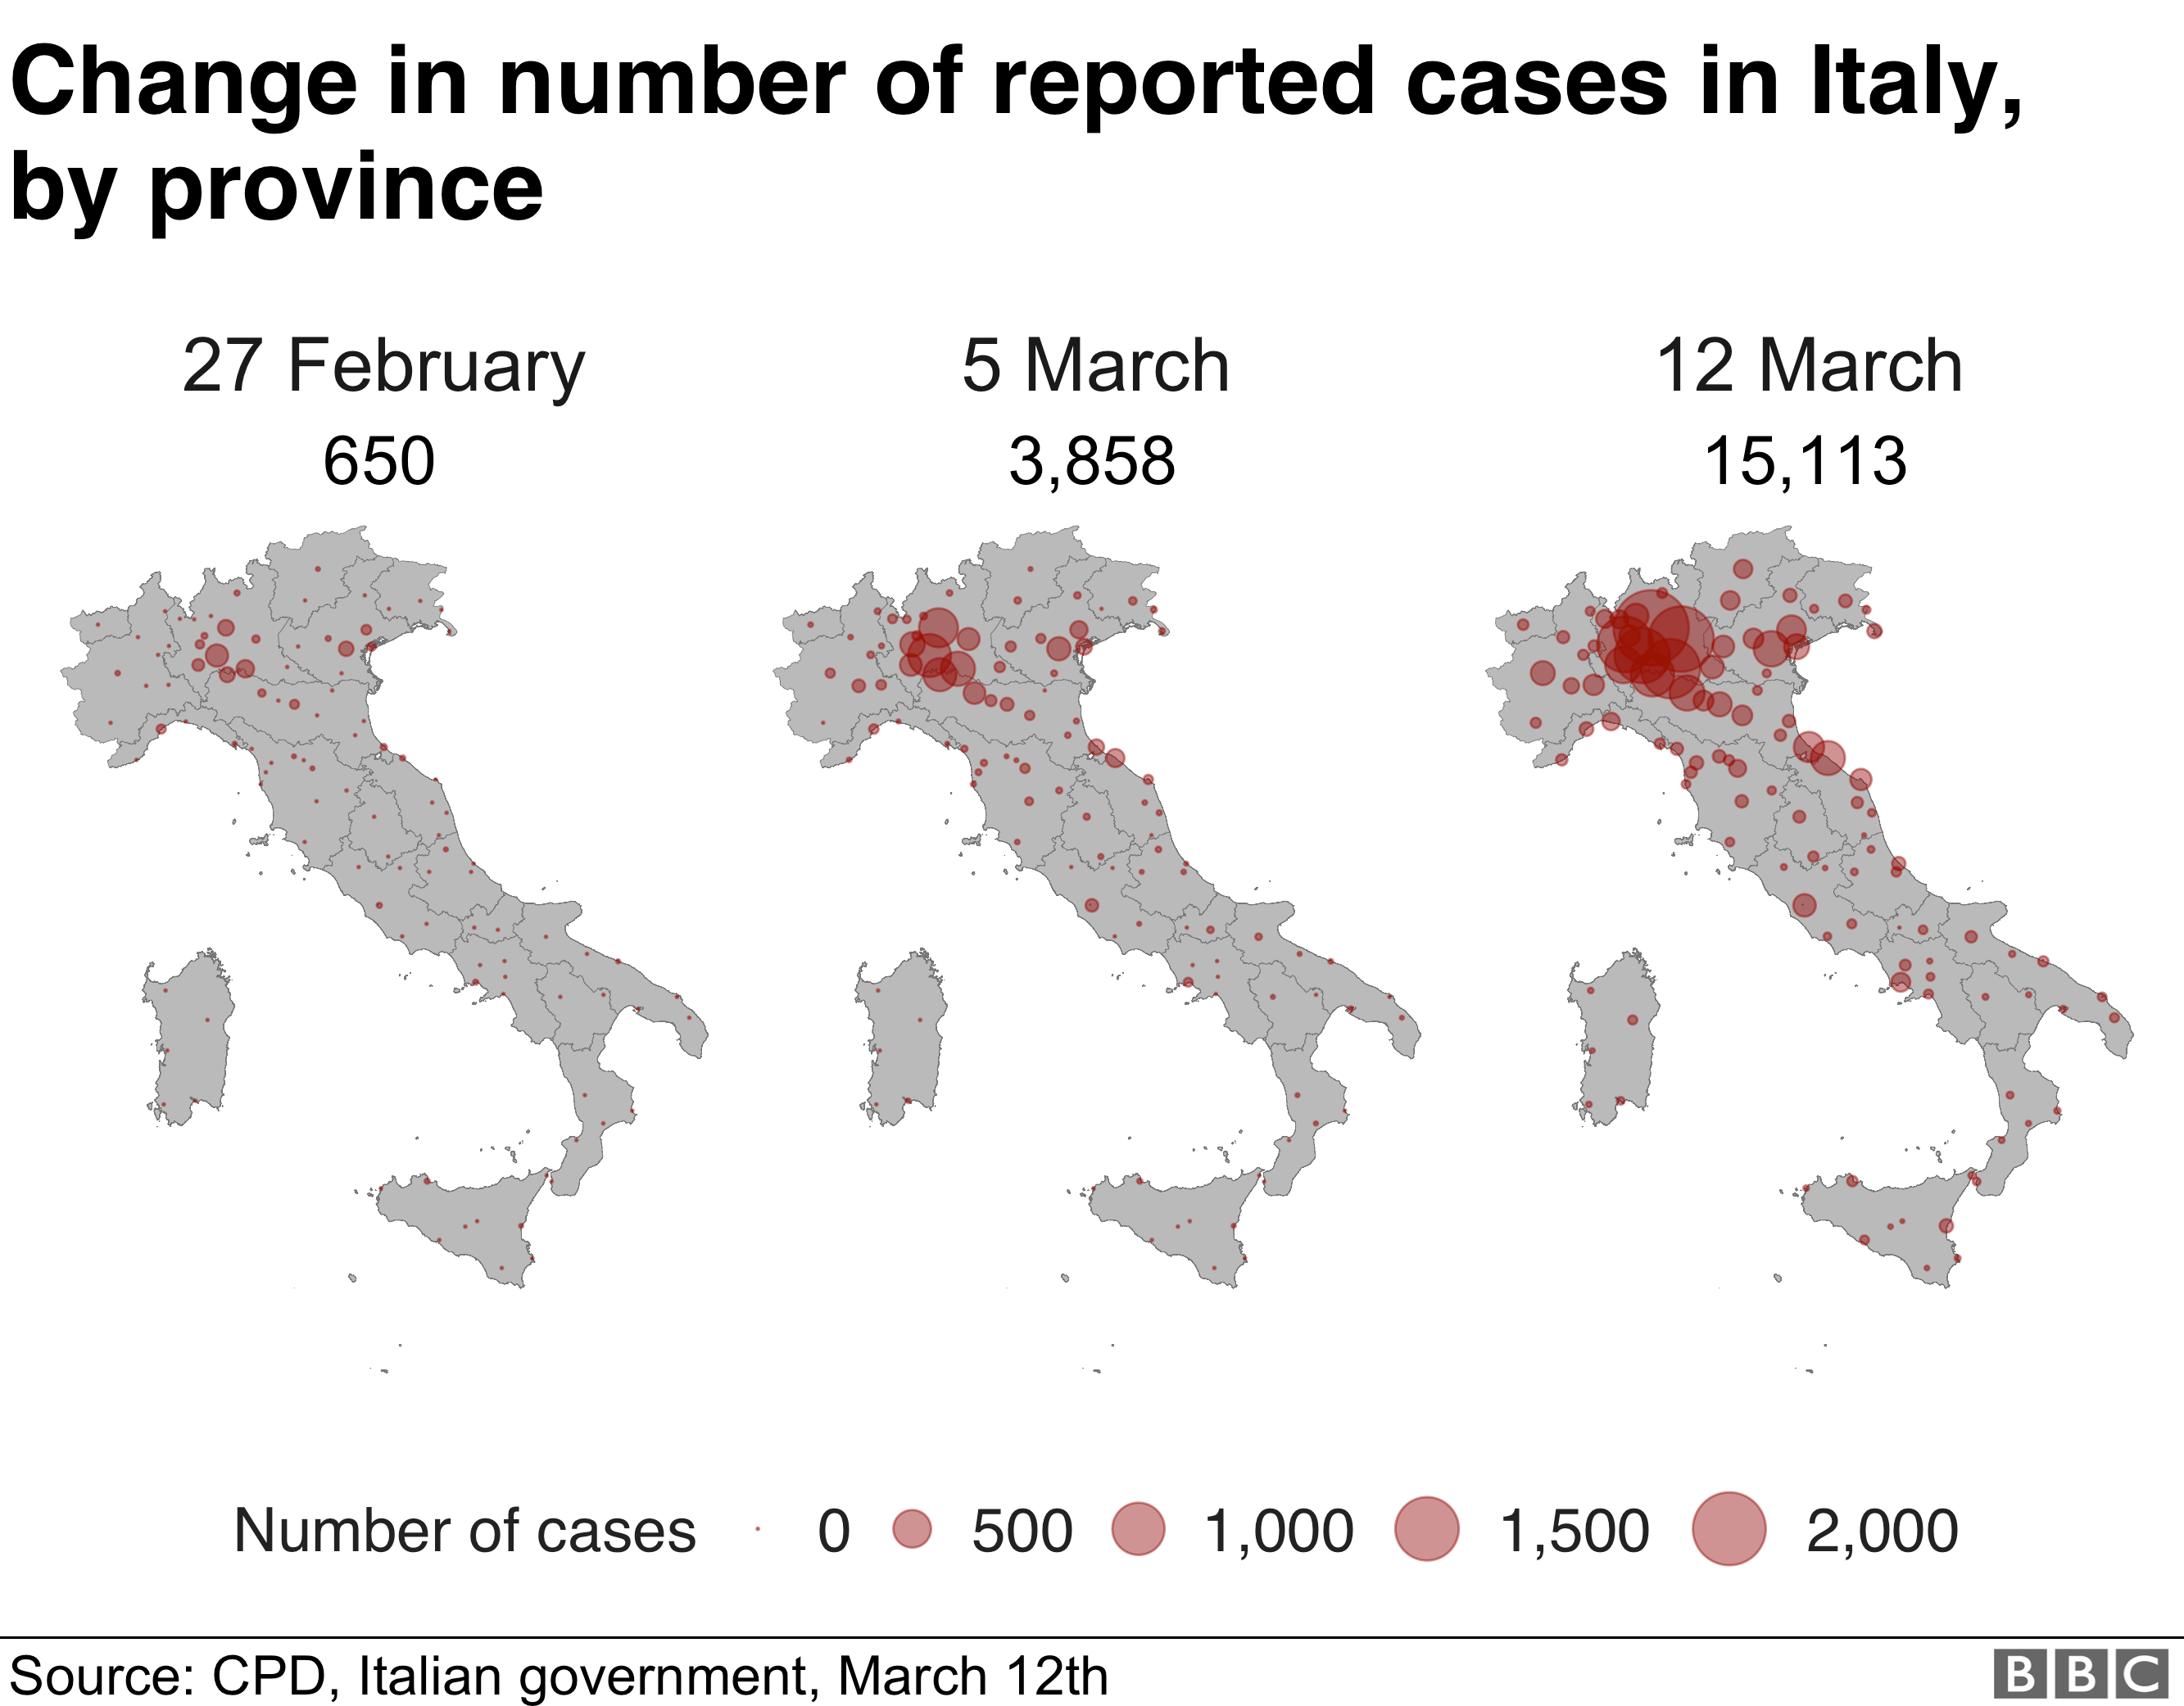 Maps showing intensity of cases by place, across Italy on 27 Feb, 5 March and 12 March